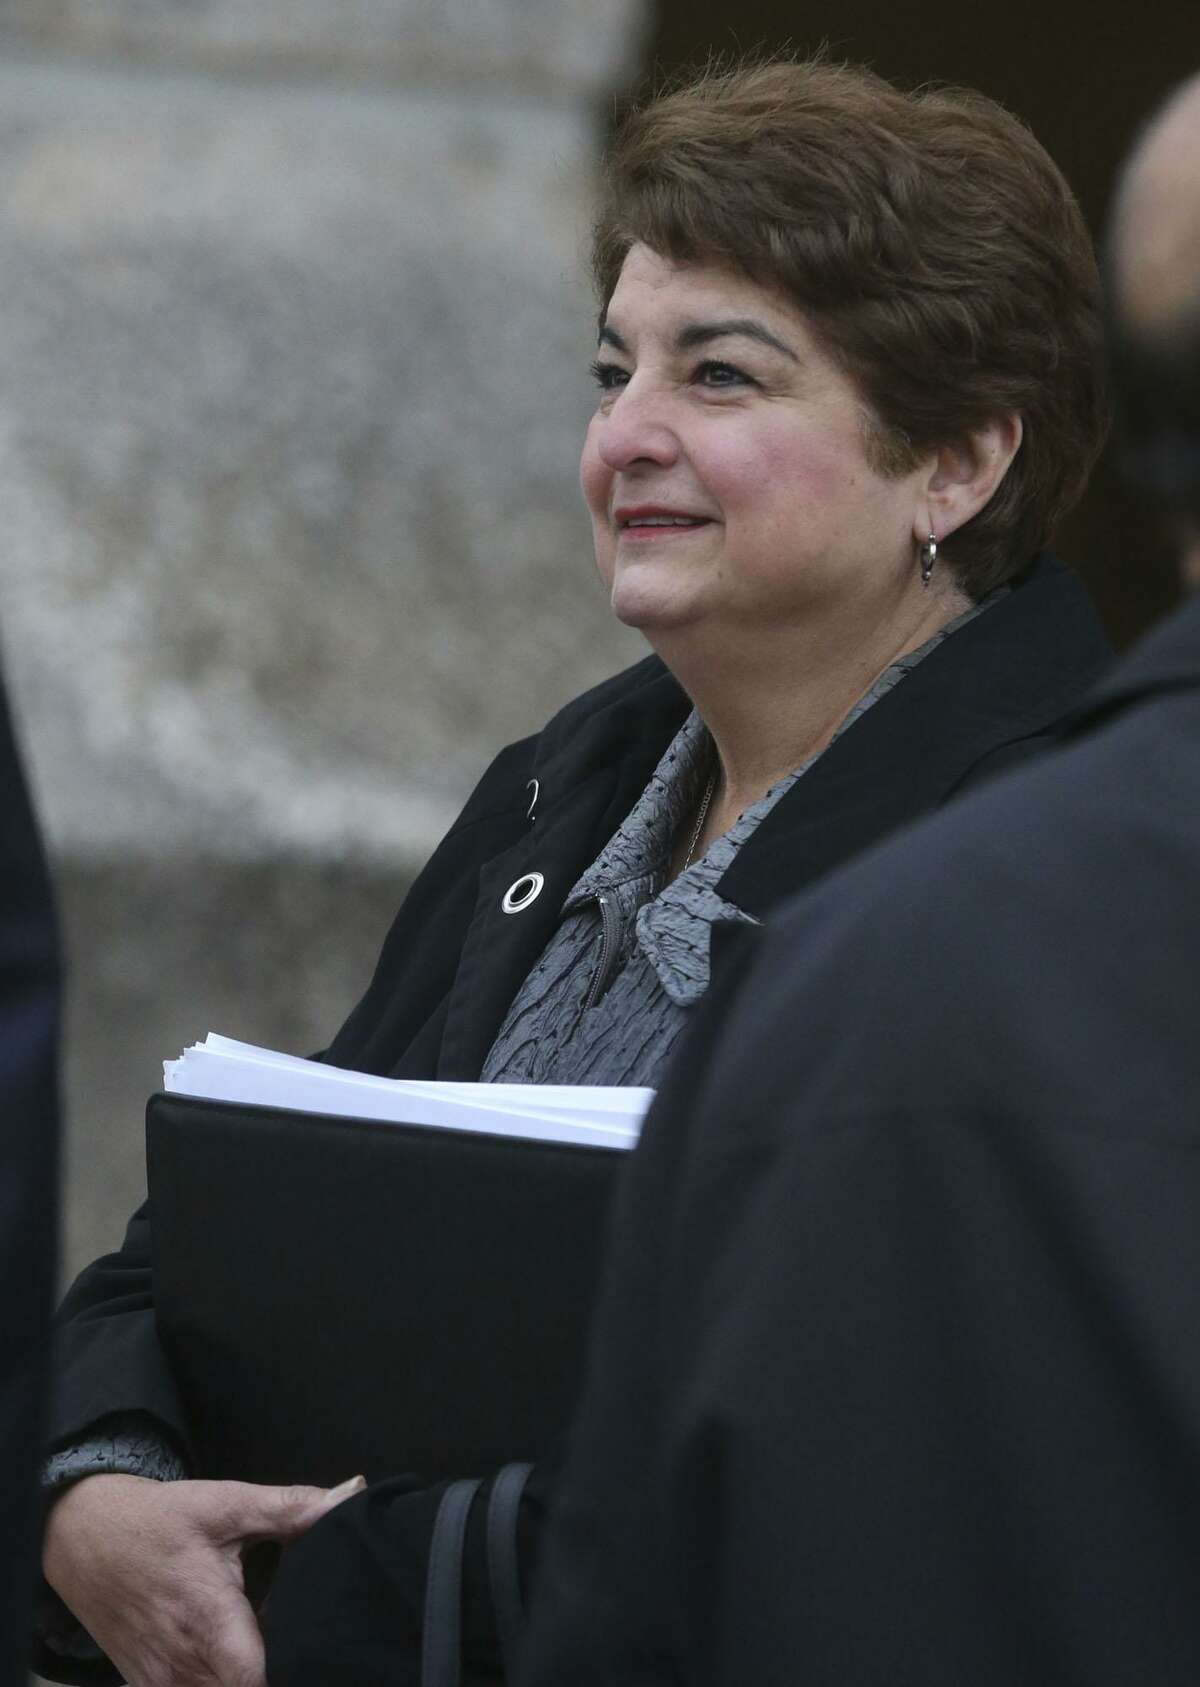 Former SAISD trustee Olga Hernandez said at her bribery trial that she thought of gifts she received from an insurance broker and his associates seeking business from the district as favors from friends.